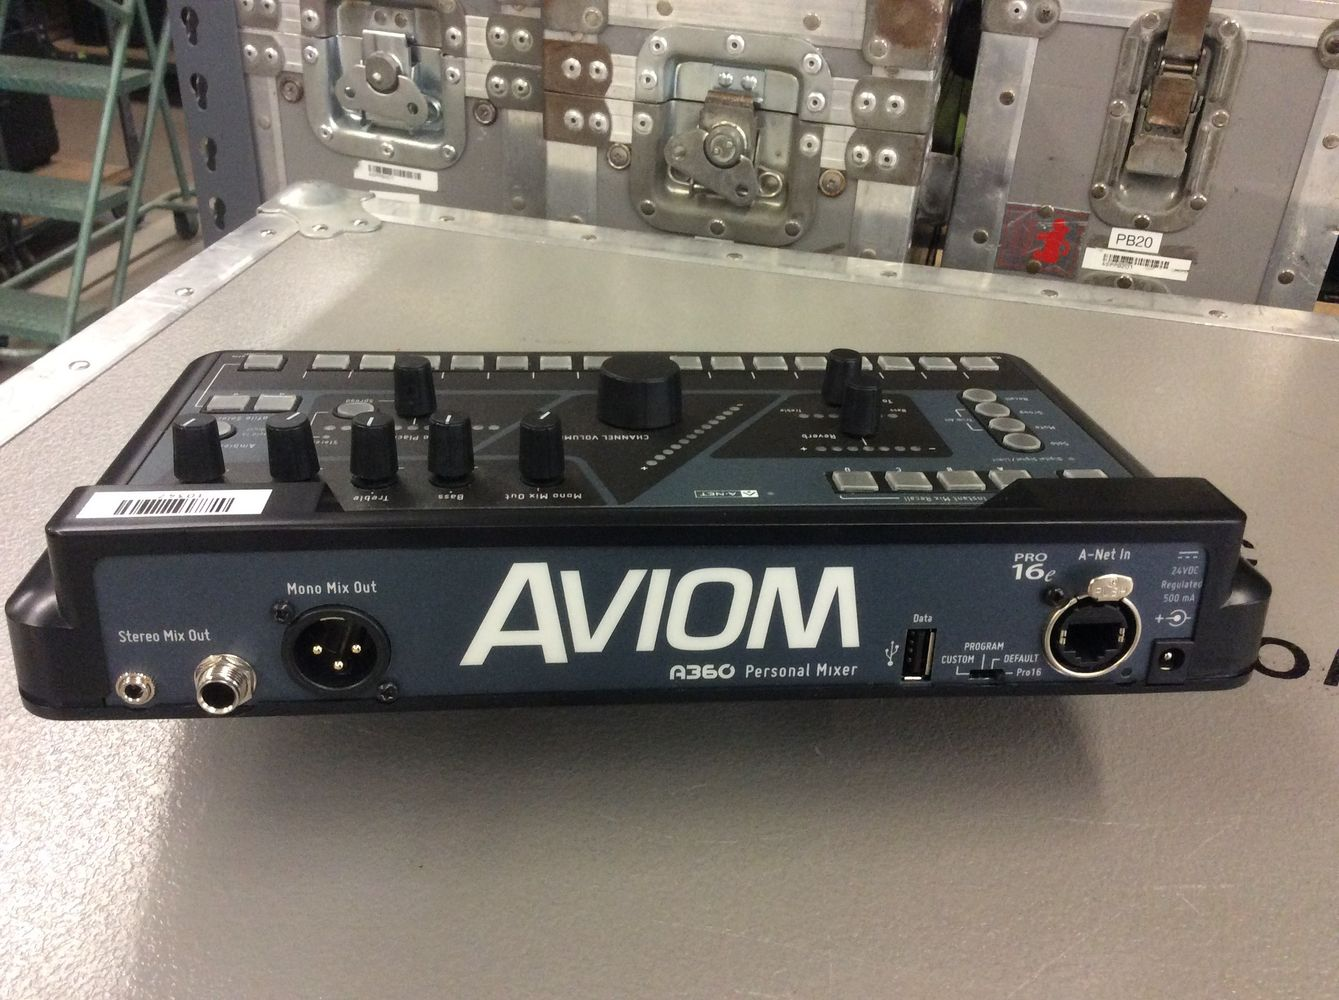 Aviom A360 at Hollywood Sound Systems.